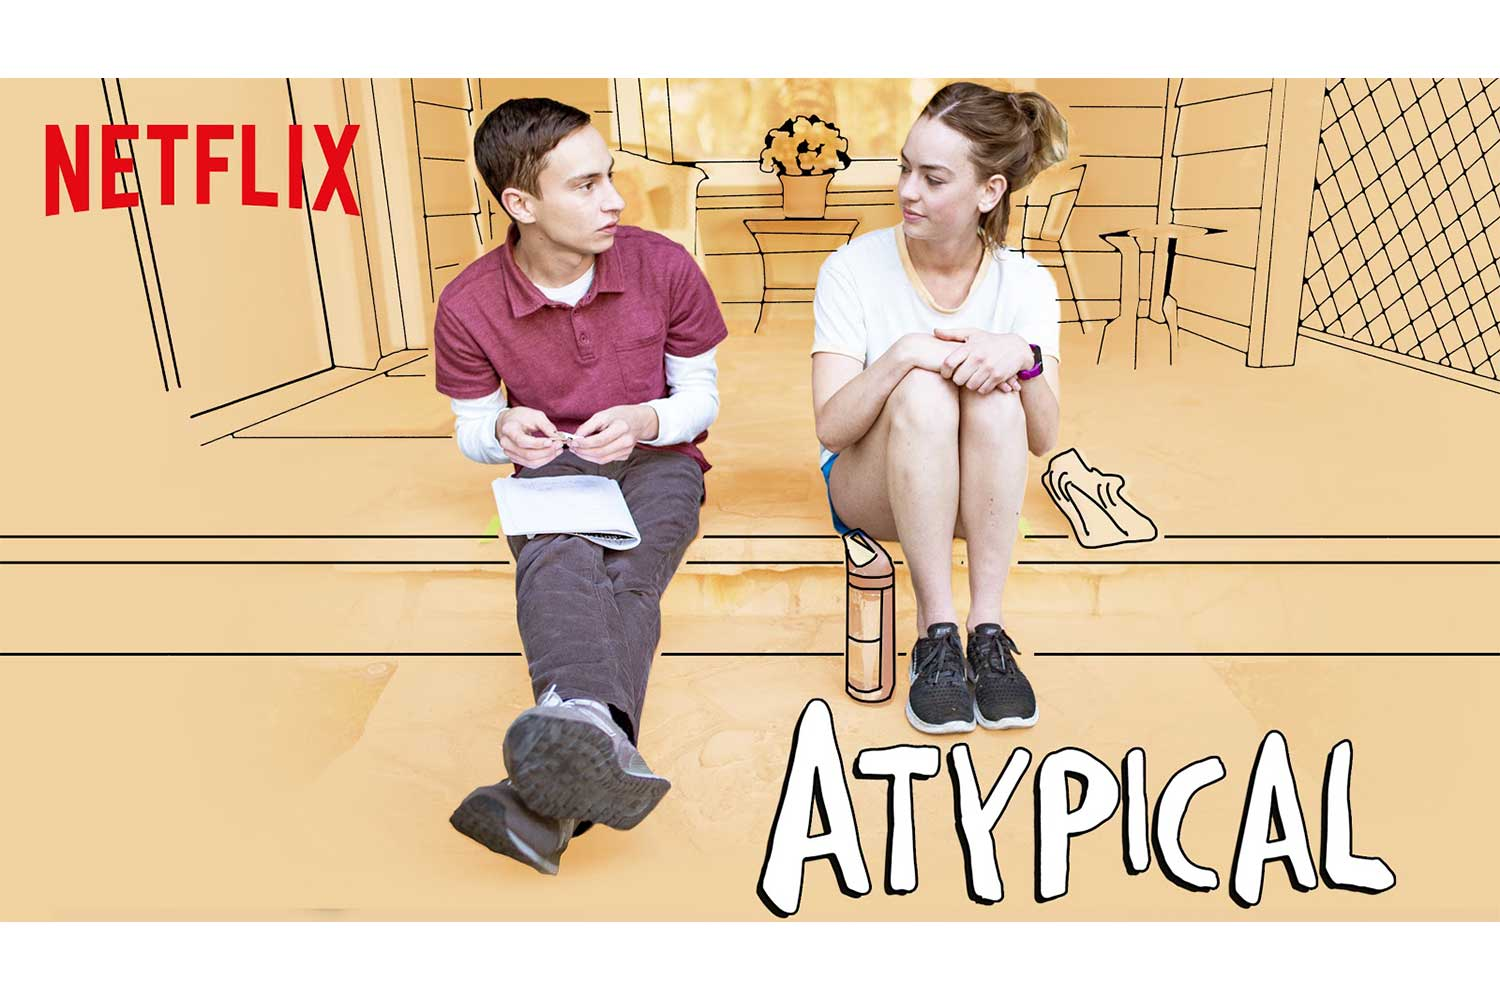 Atypical_04jpg